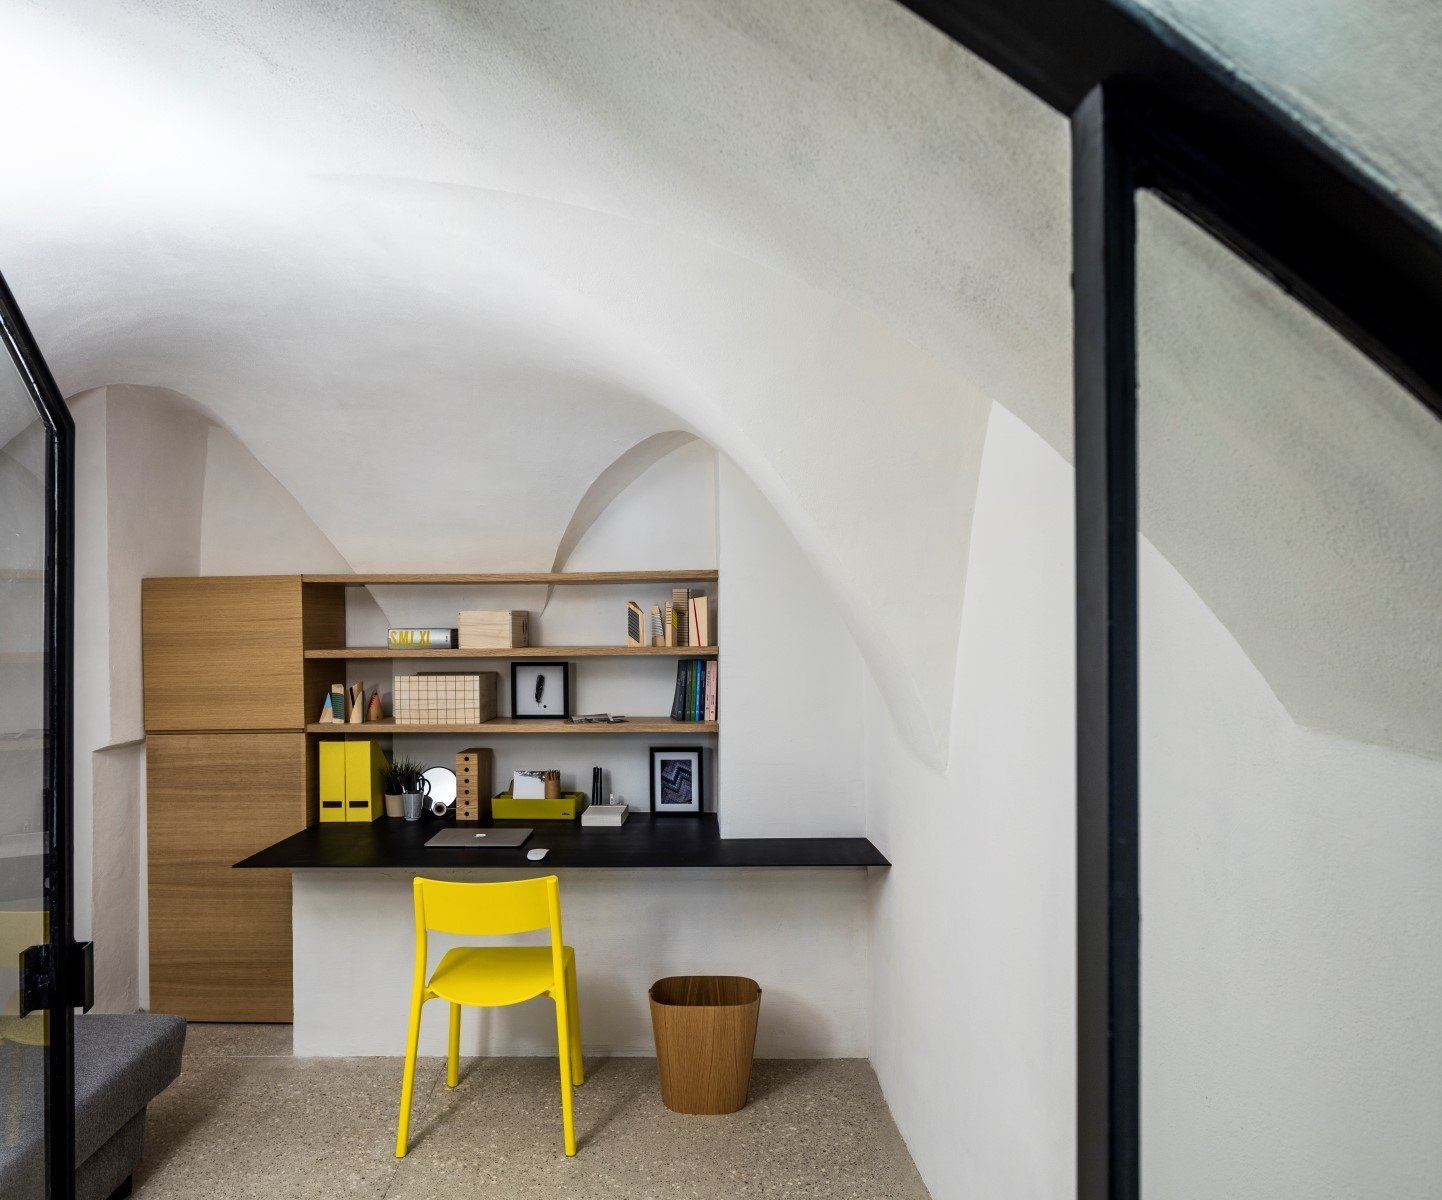 Office, Study Room Type, Chair, and Terrazzo Floor  Old Jaffa House